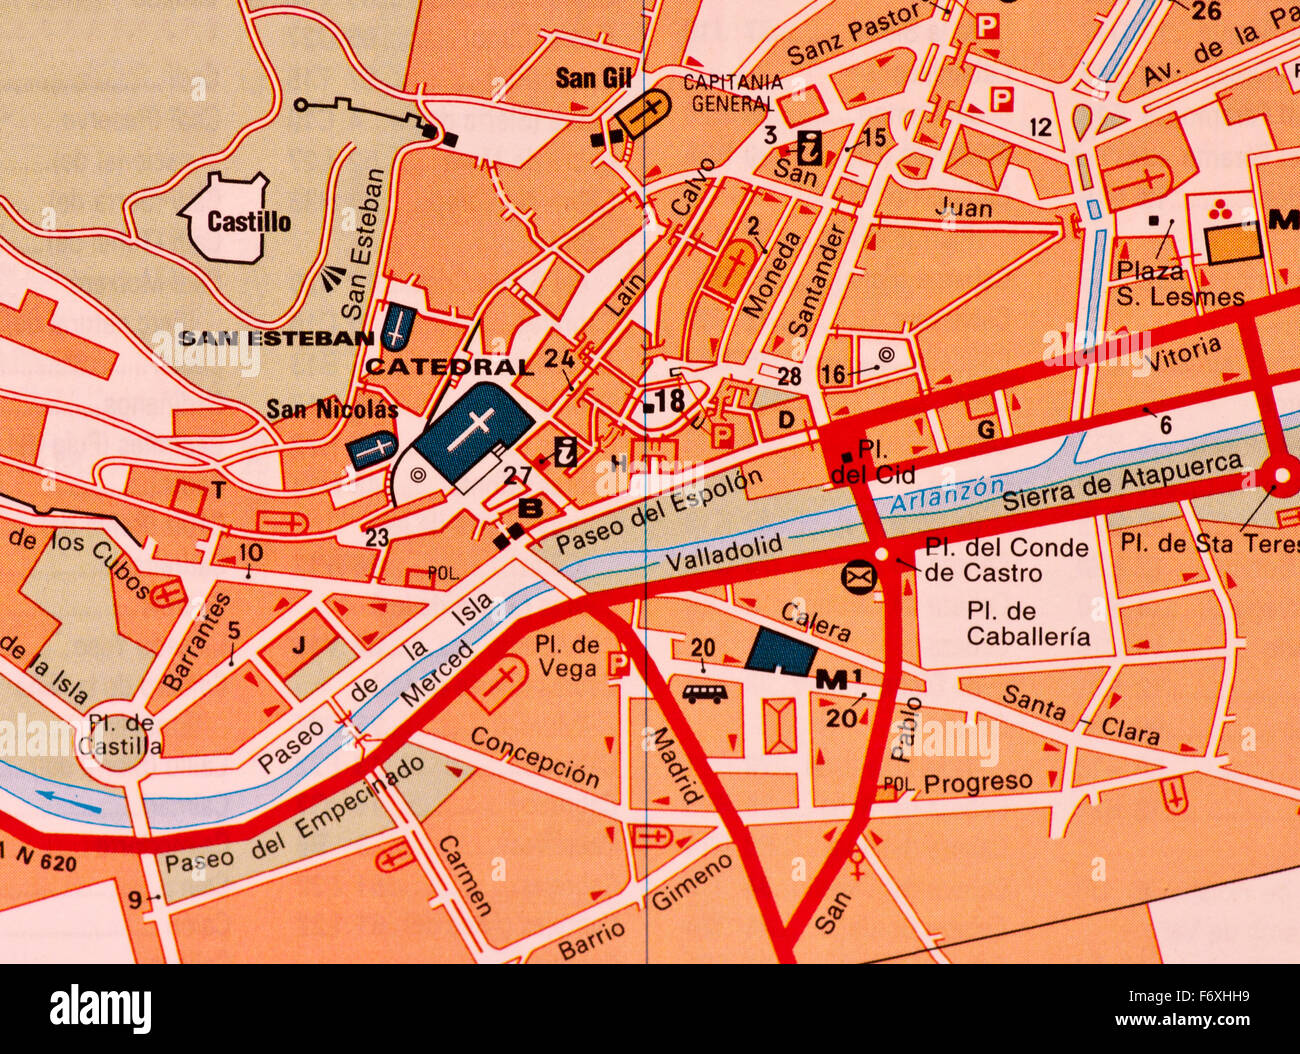 Street Map Of The Spanish City Of Burgos Spain Stock Photo